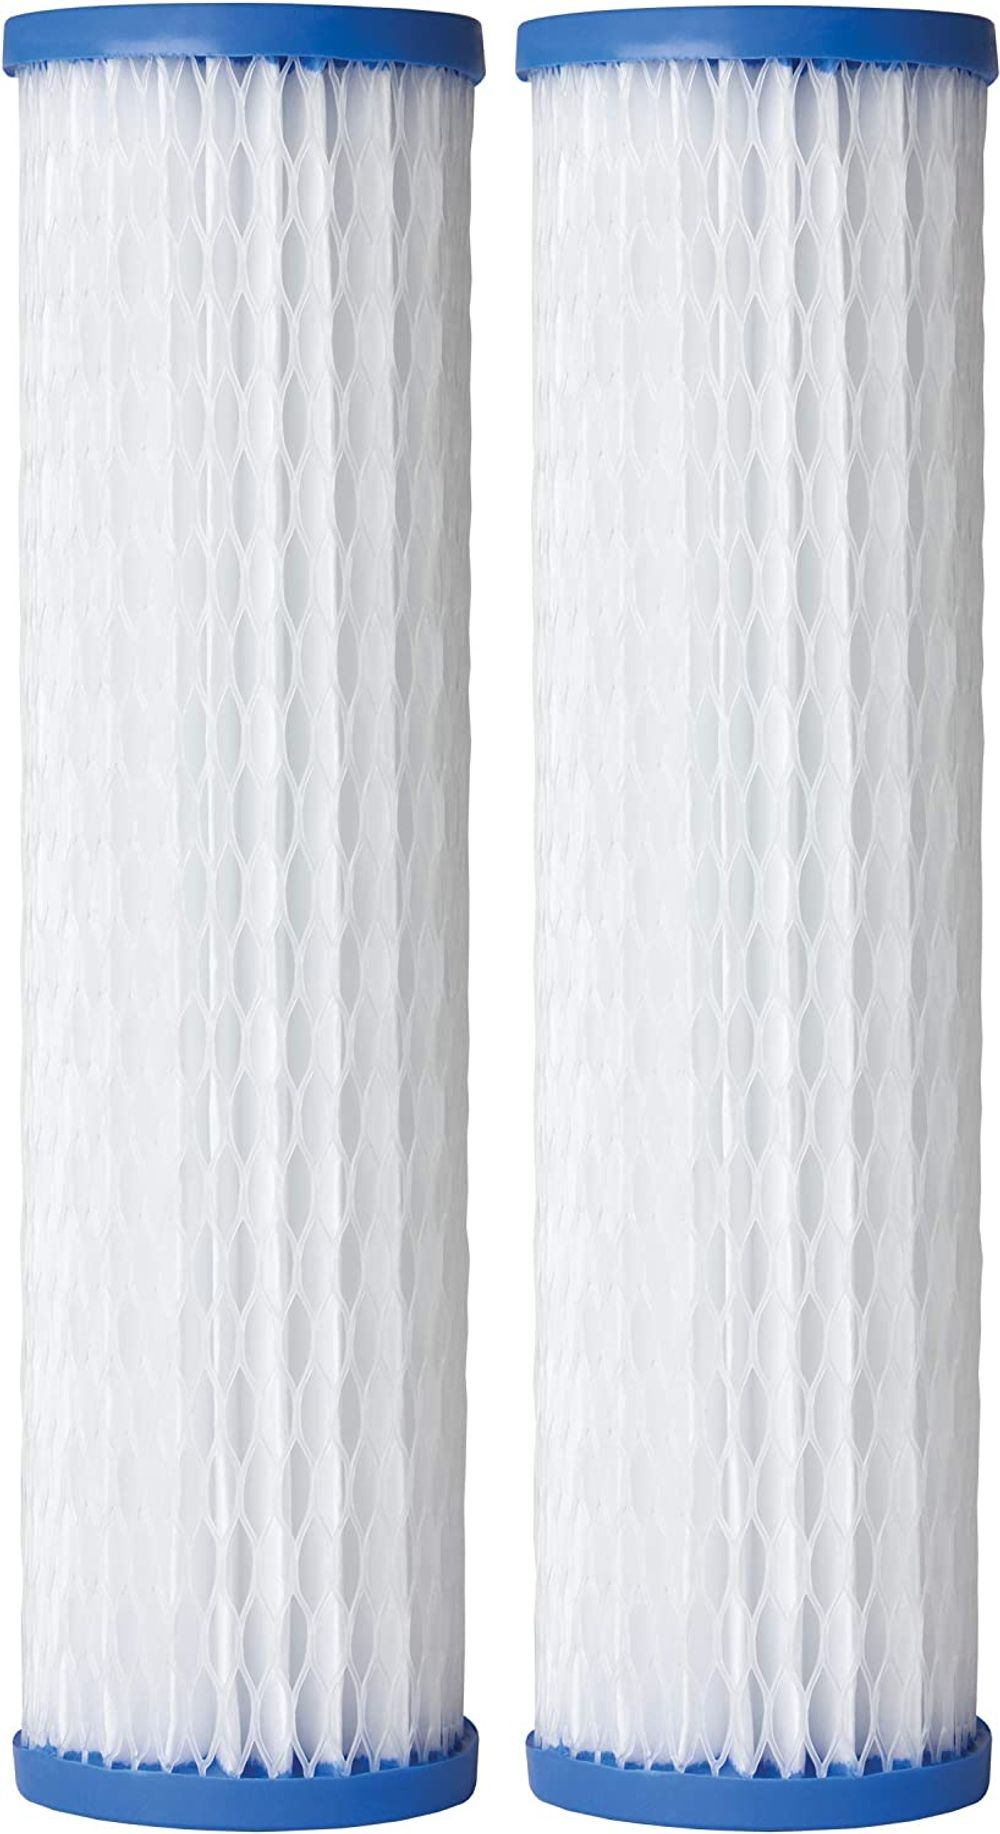 """AO Smith 2.5""""x10"""" 40 Micron Sediment Water Filter Replacement Cartridge - 2 Pack - For Whole House Filtration Systems - AO-WH-PRE-RPP2"""